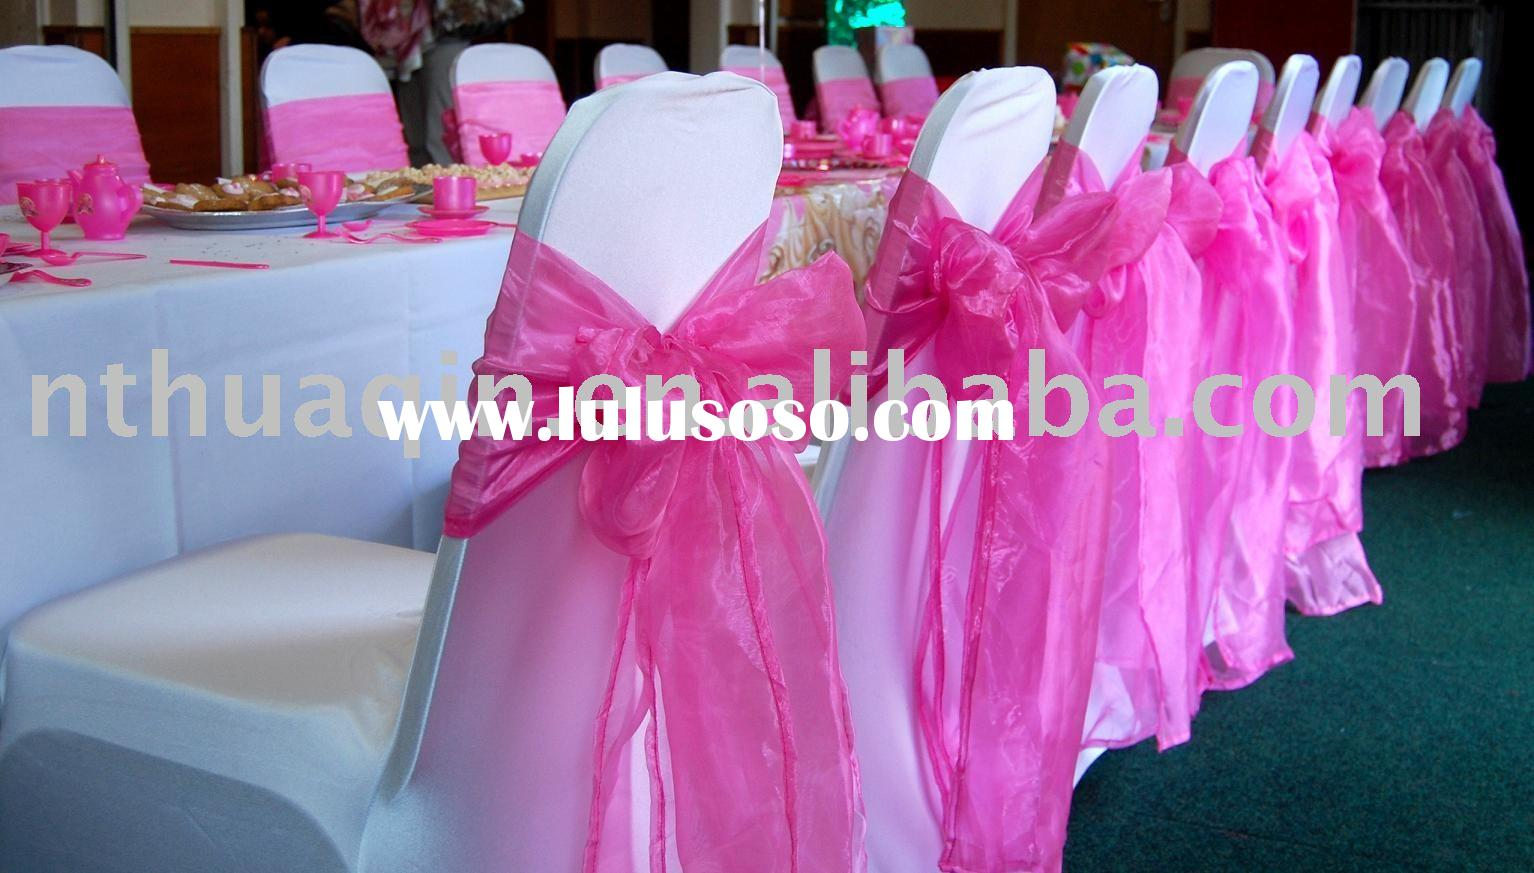 Spandex chair covers & Organza sash,Lycra chair covers